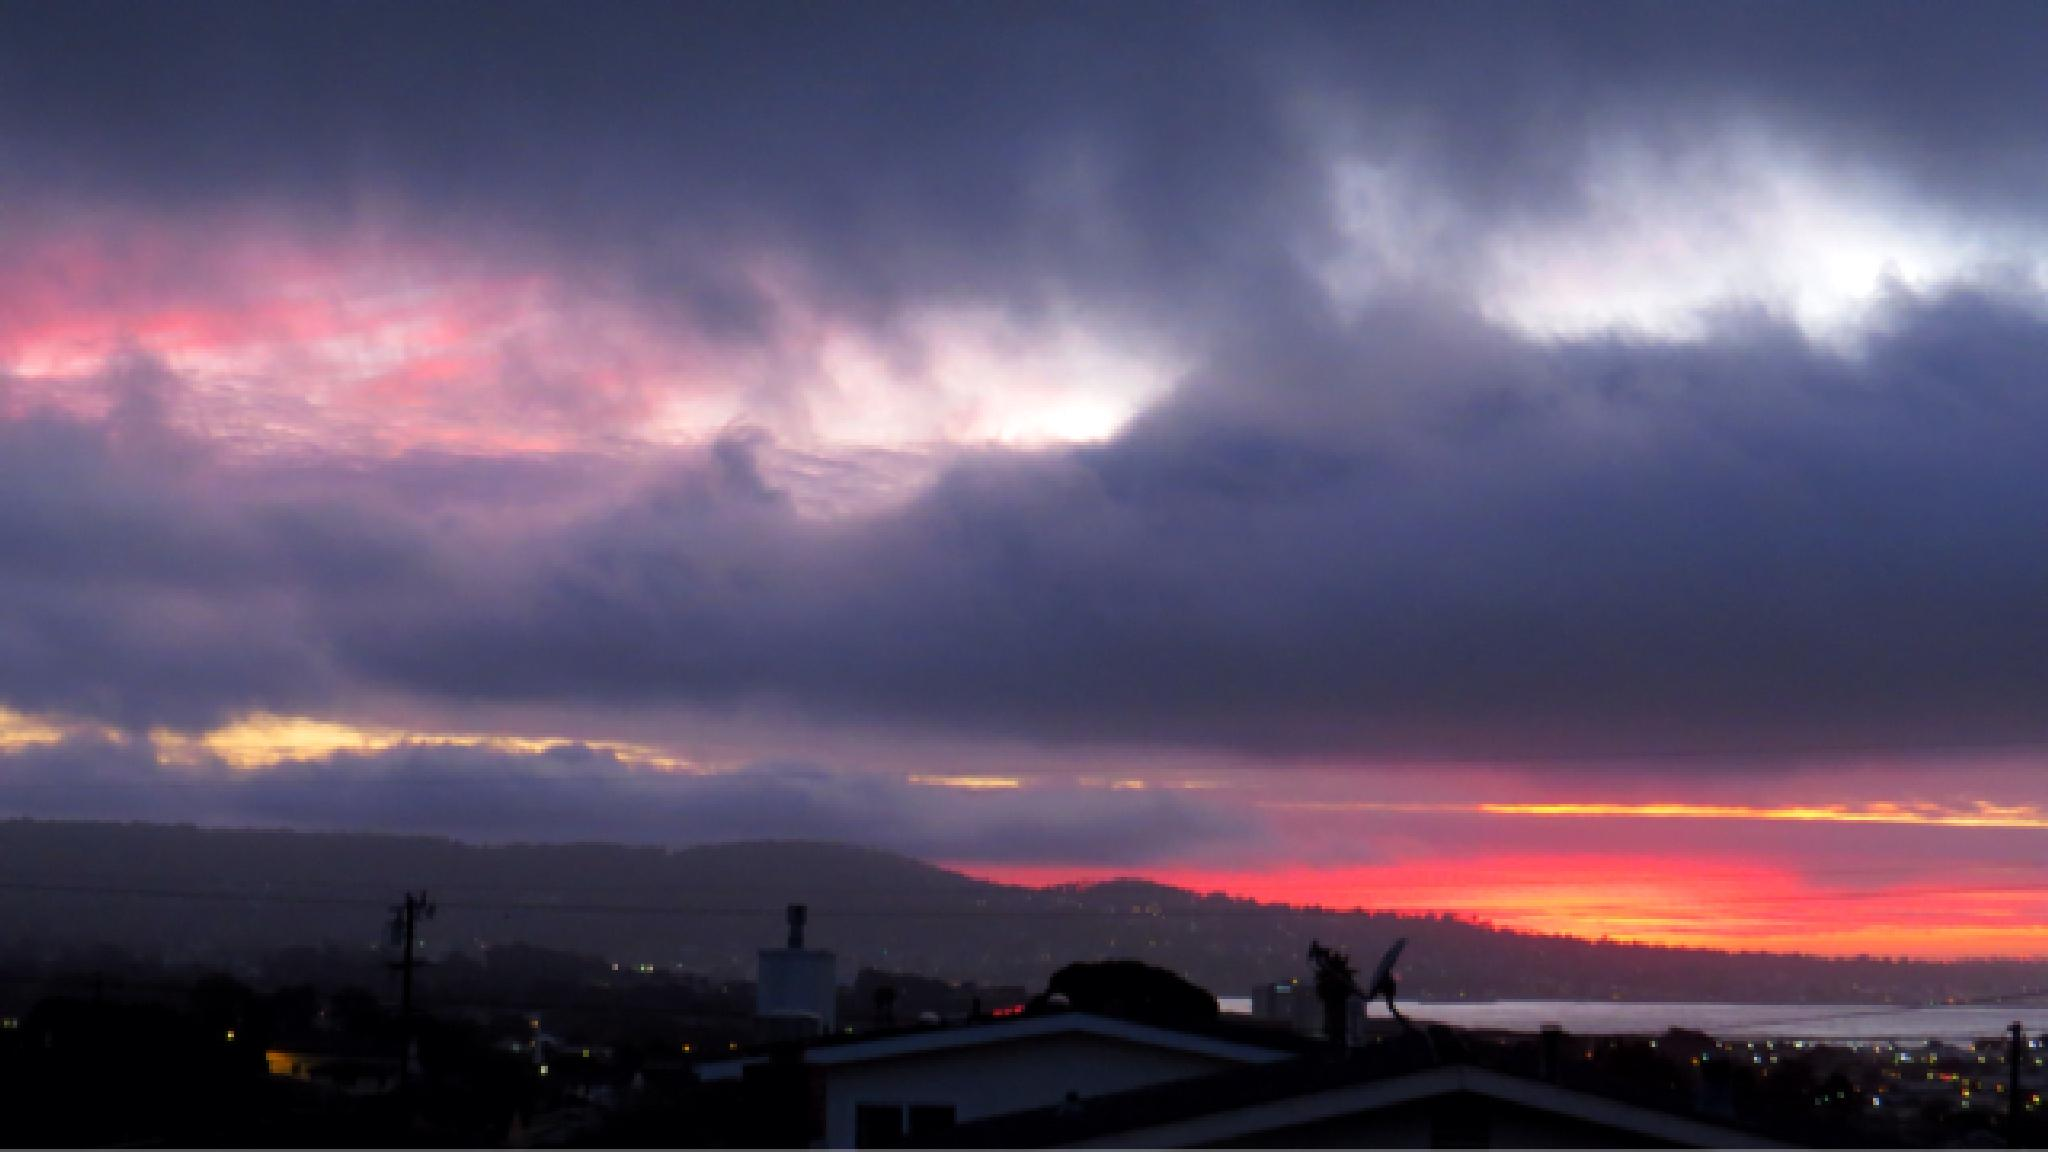 IMG_2977 by soulofcentralcoast